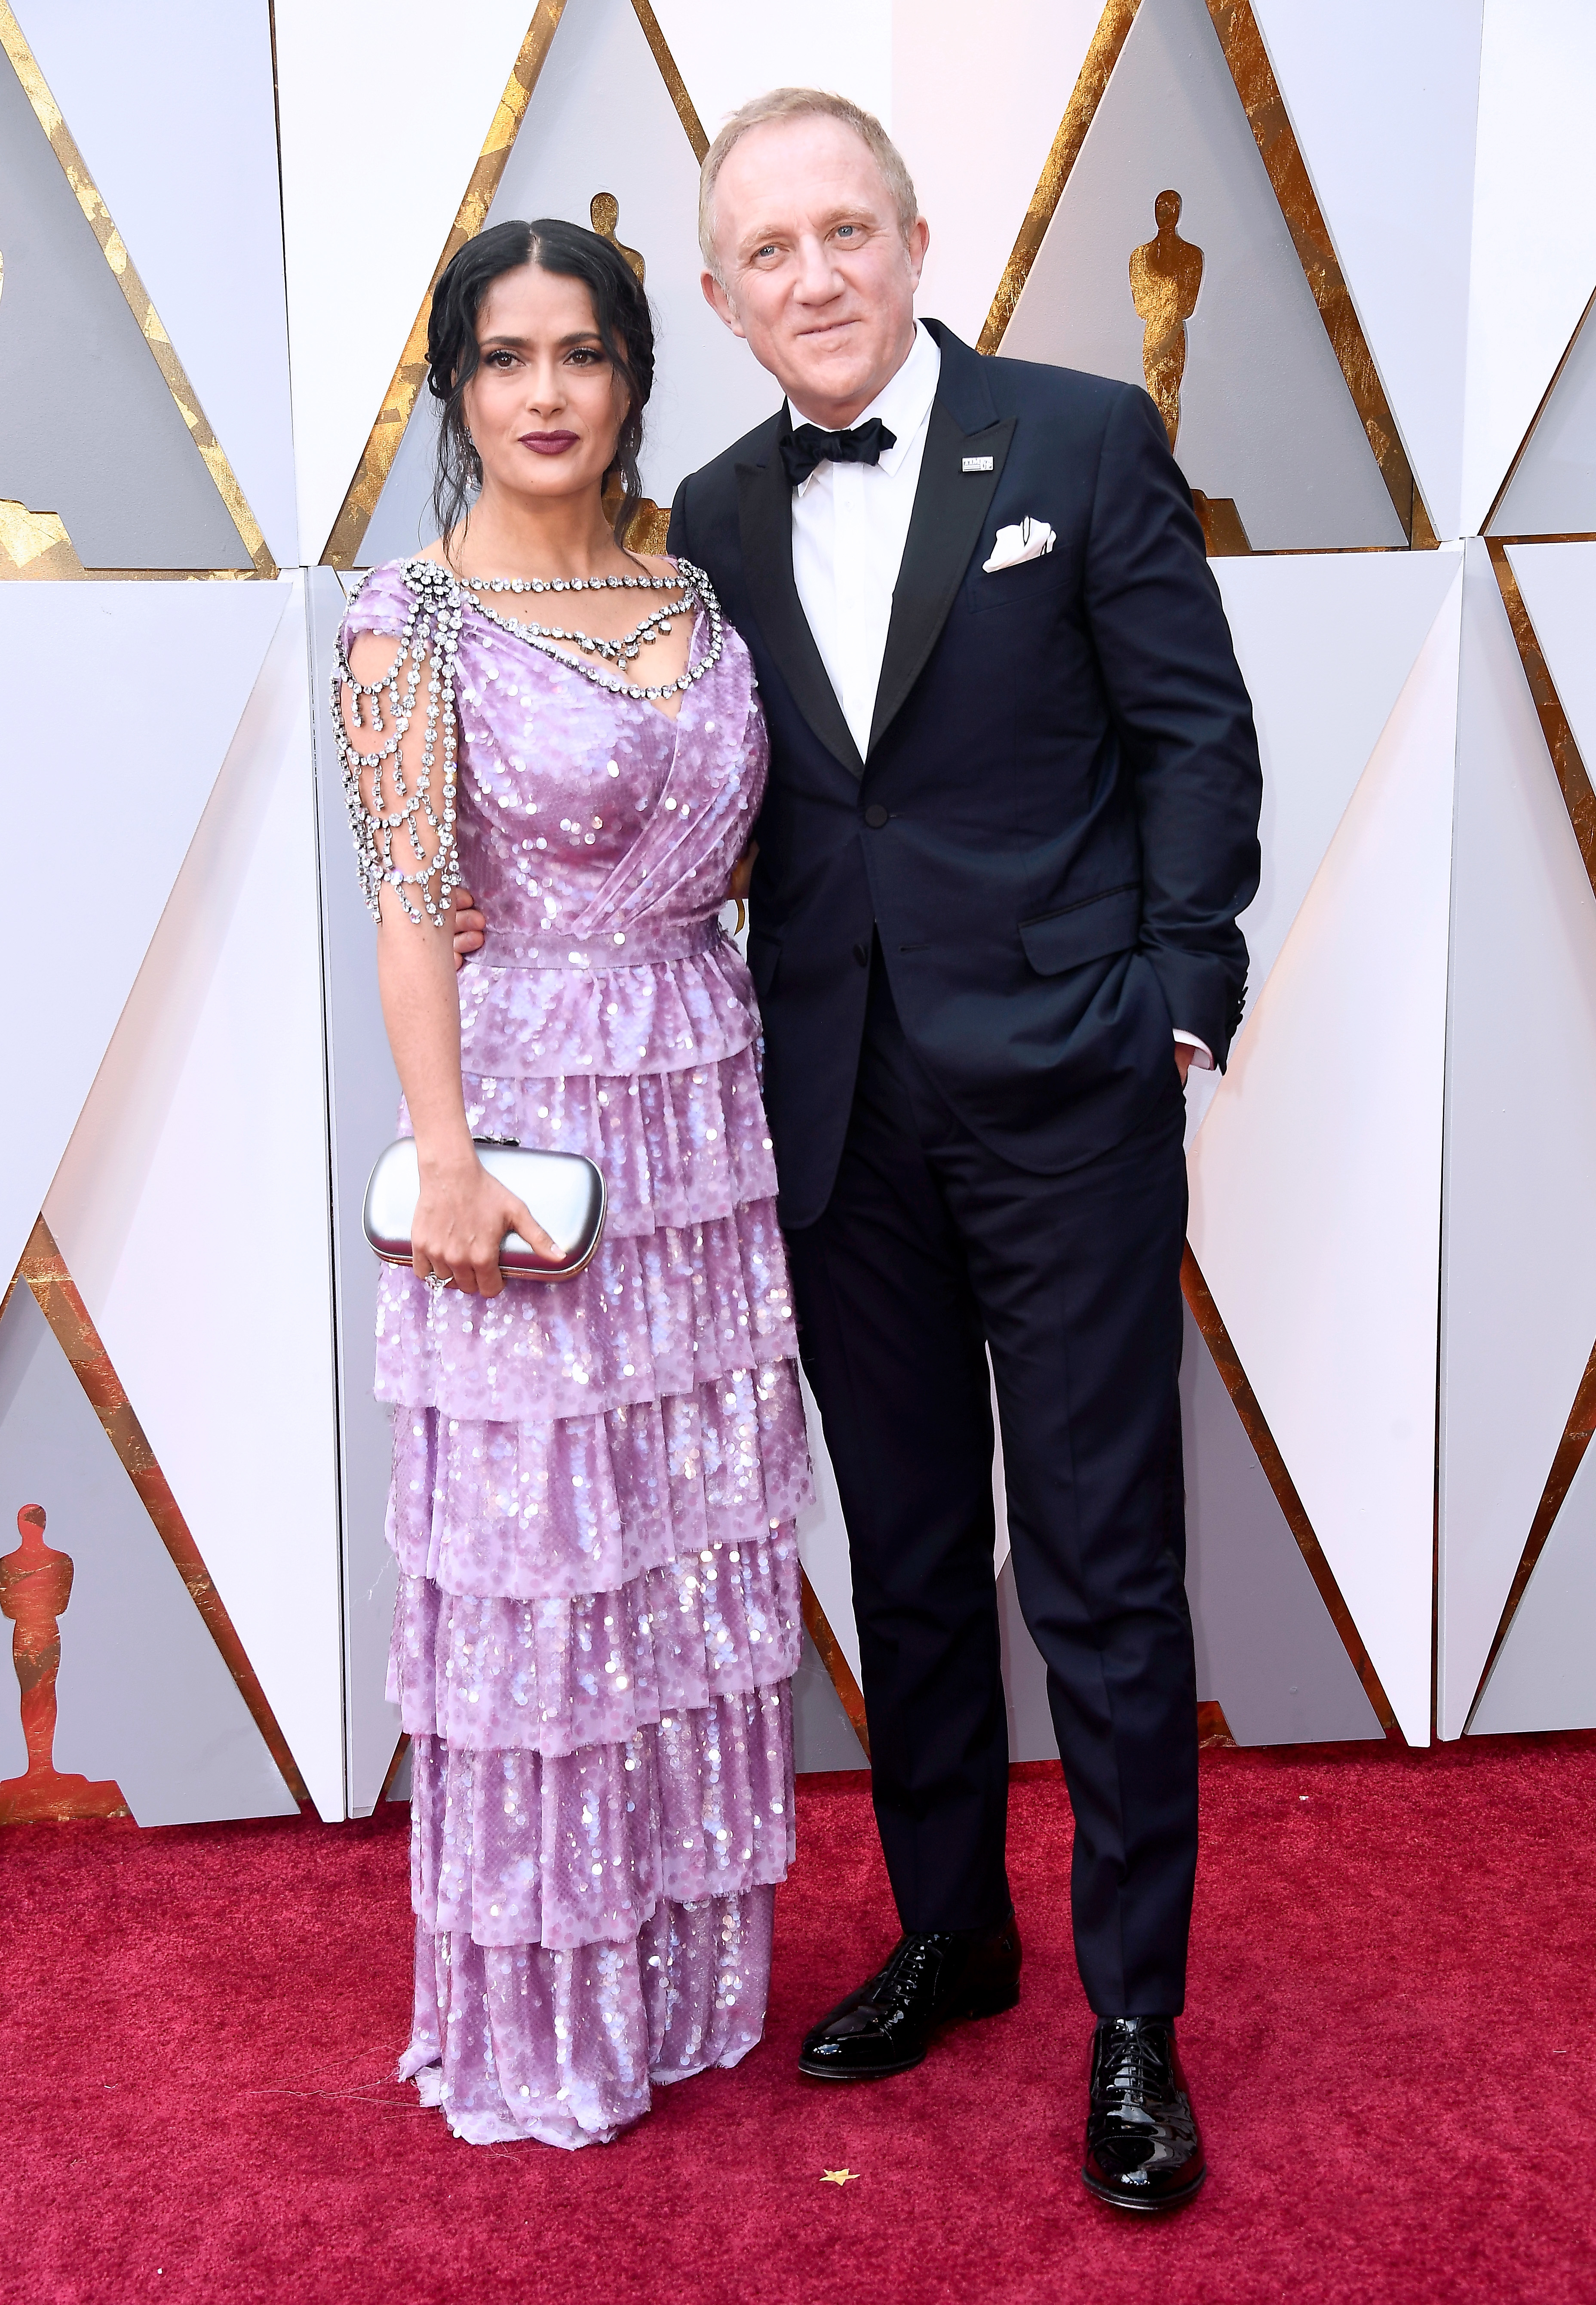 Salma Hayek and husband François Henri Pinault attend the 90th Annual Academy Awards in Hollywood on March 4, 2018.